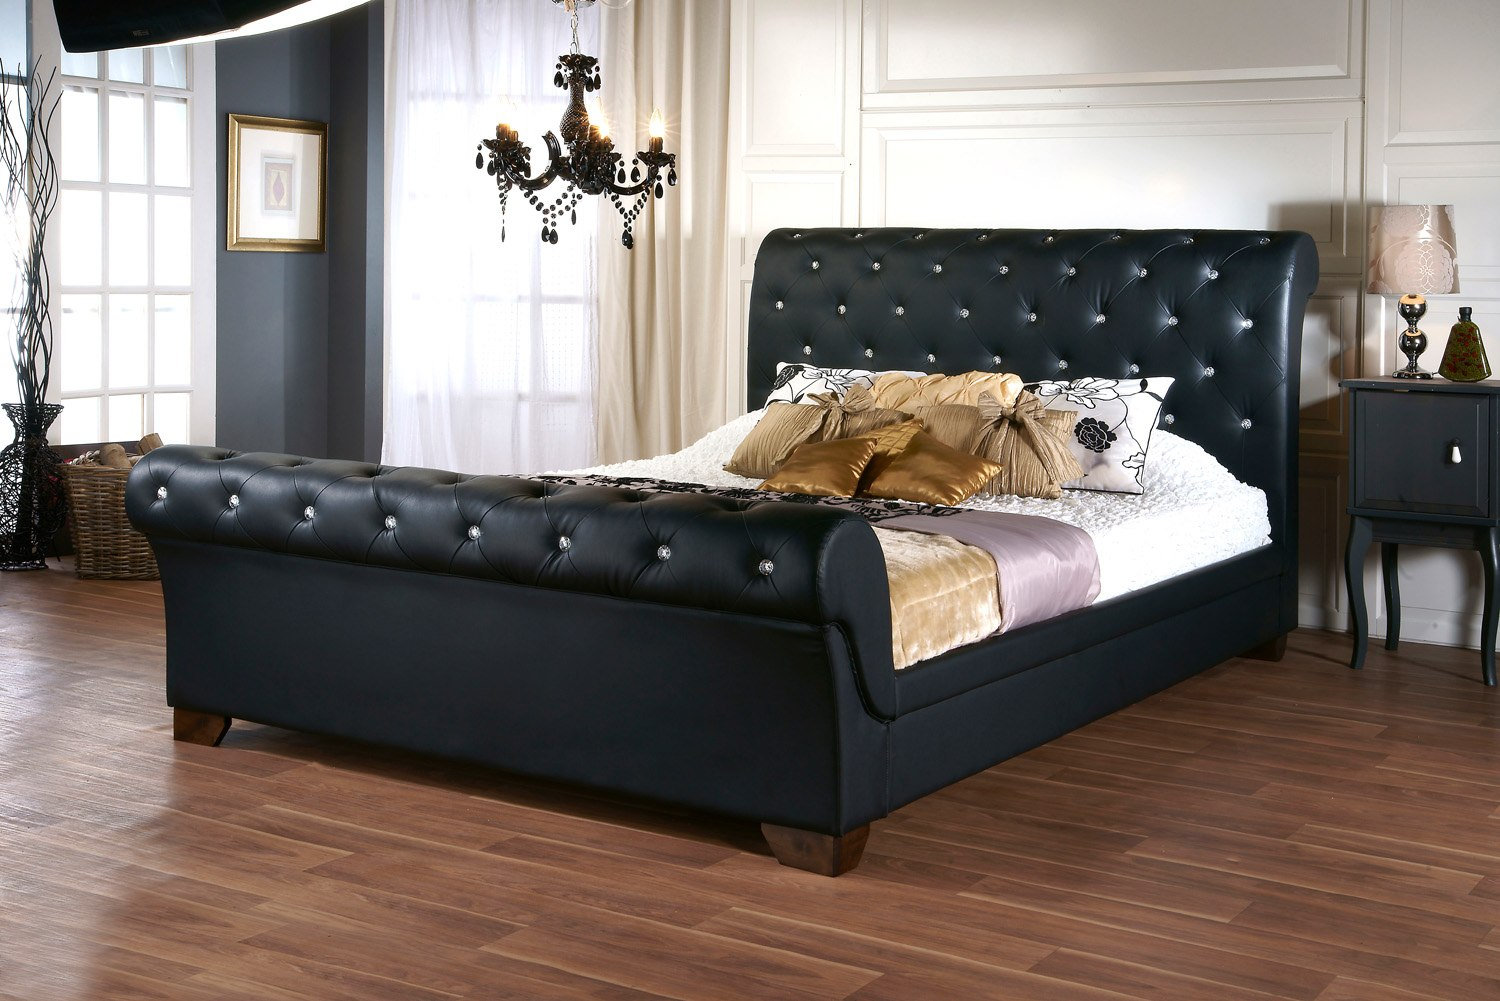 dreamland elizabeth diamond black faux leather bedframe available from the world of beds askern - Leather Bed